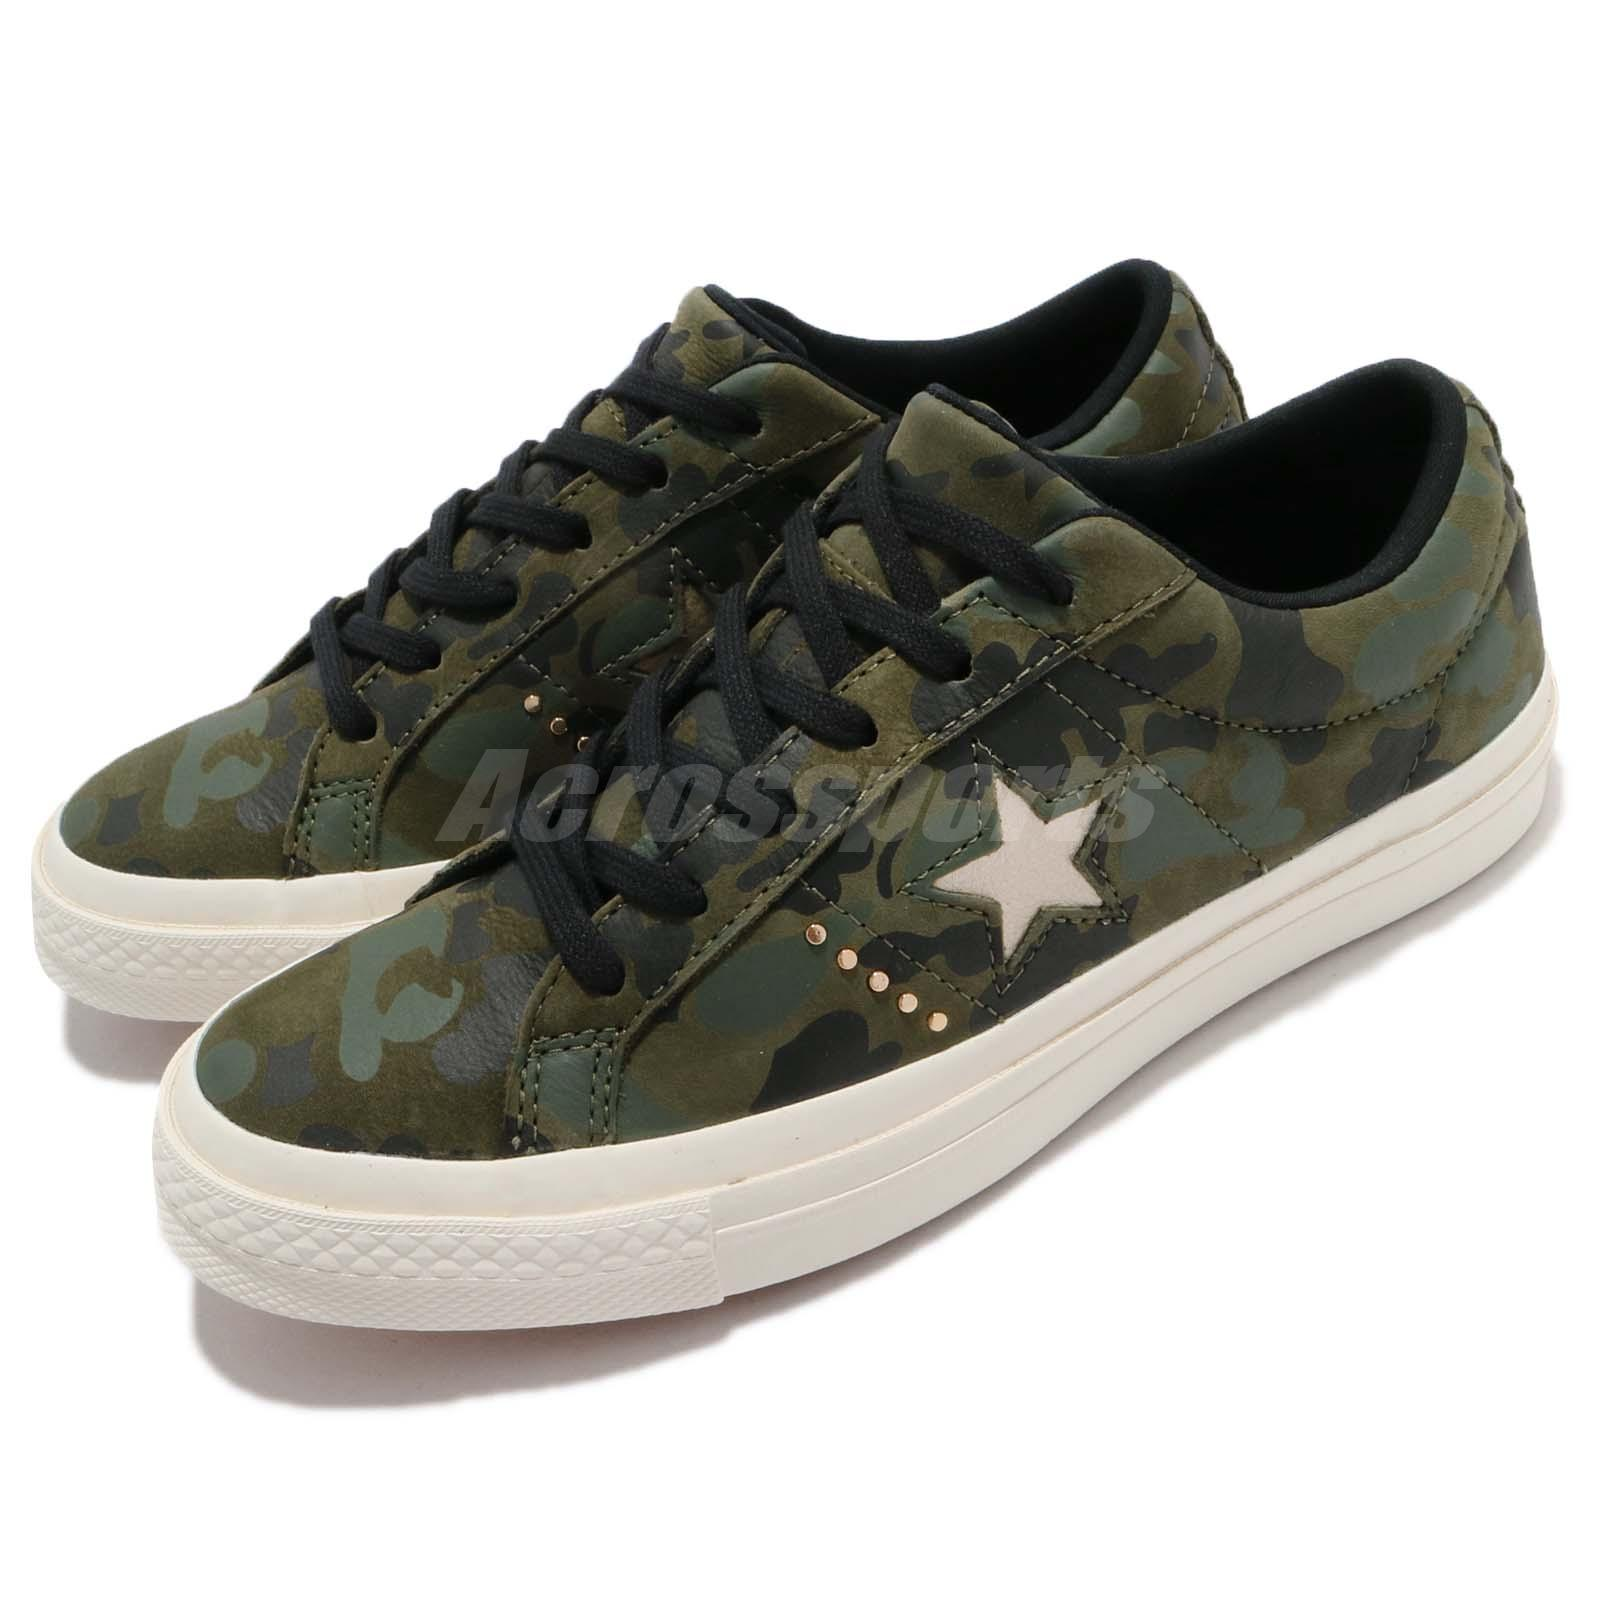 9a5dec971f9f Details about Converse One Star Camo Green White Men Shoes Sneakers Trainers  159703C